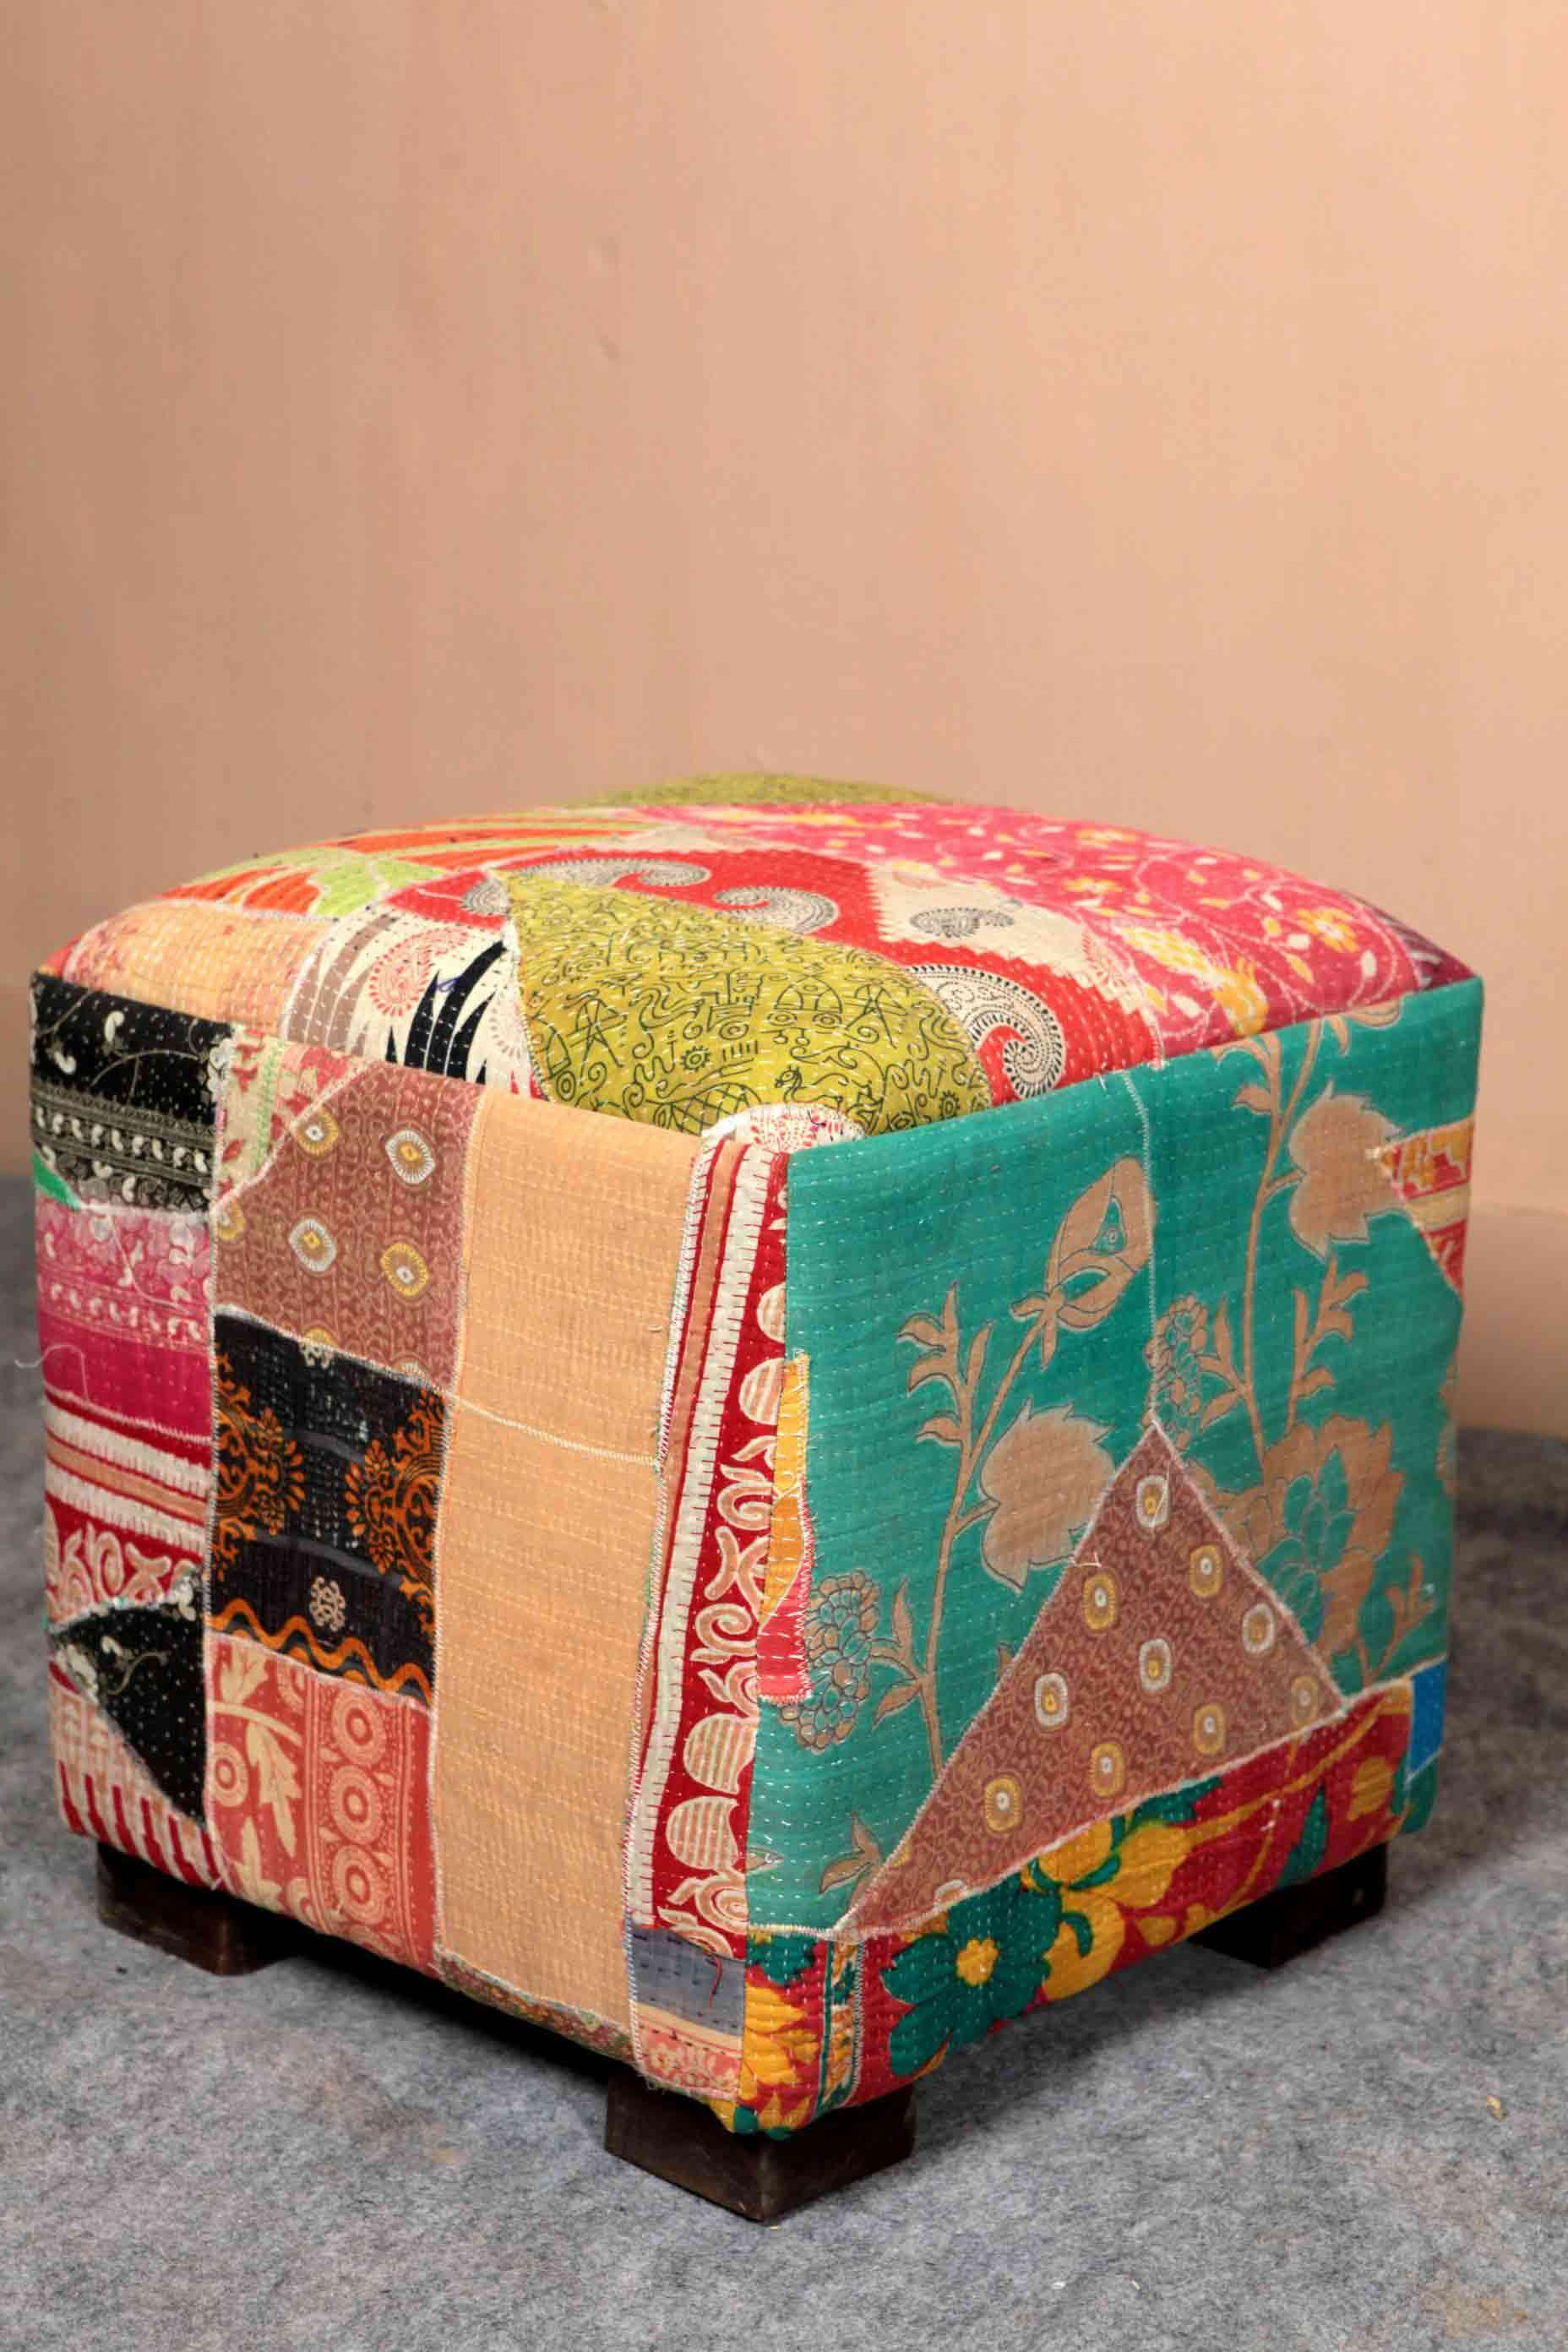 RC101 Square Puff  This beautiful stool is created by some very creative artist out of remains of old wood and cloth. This is so colourful and well designed that it will add elegance to the sit out where this is kept. http://bit.ly/1dz0qUH